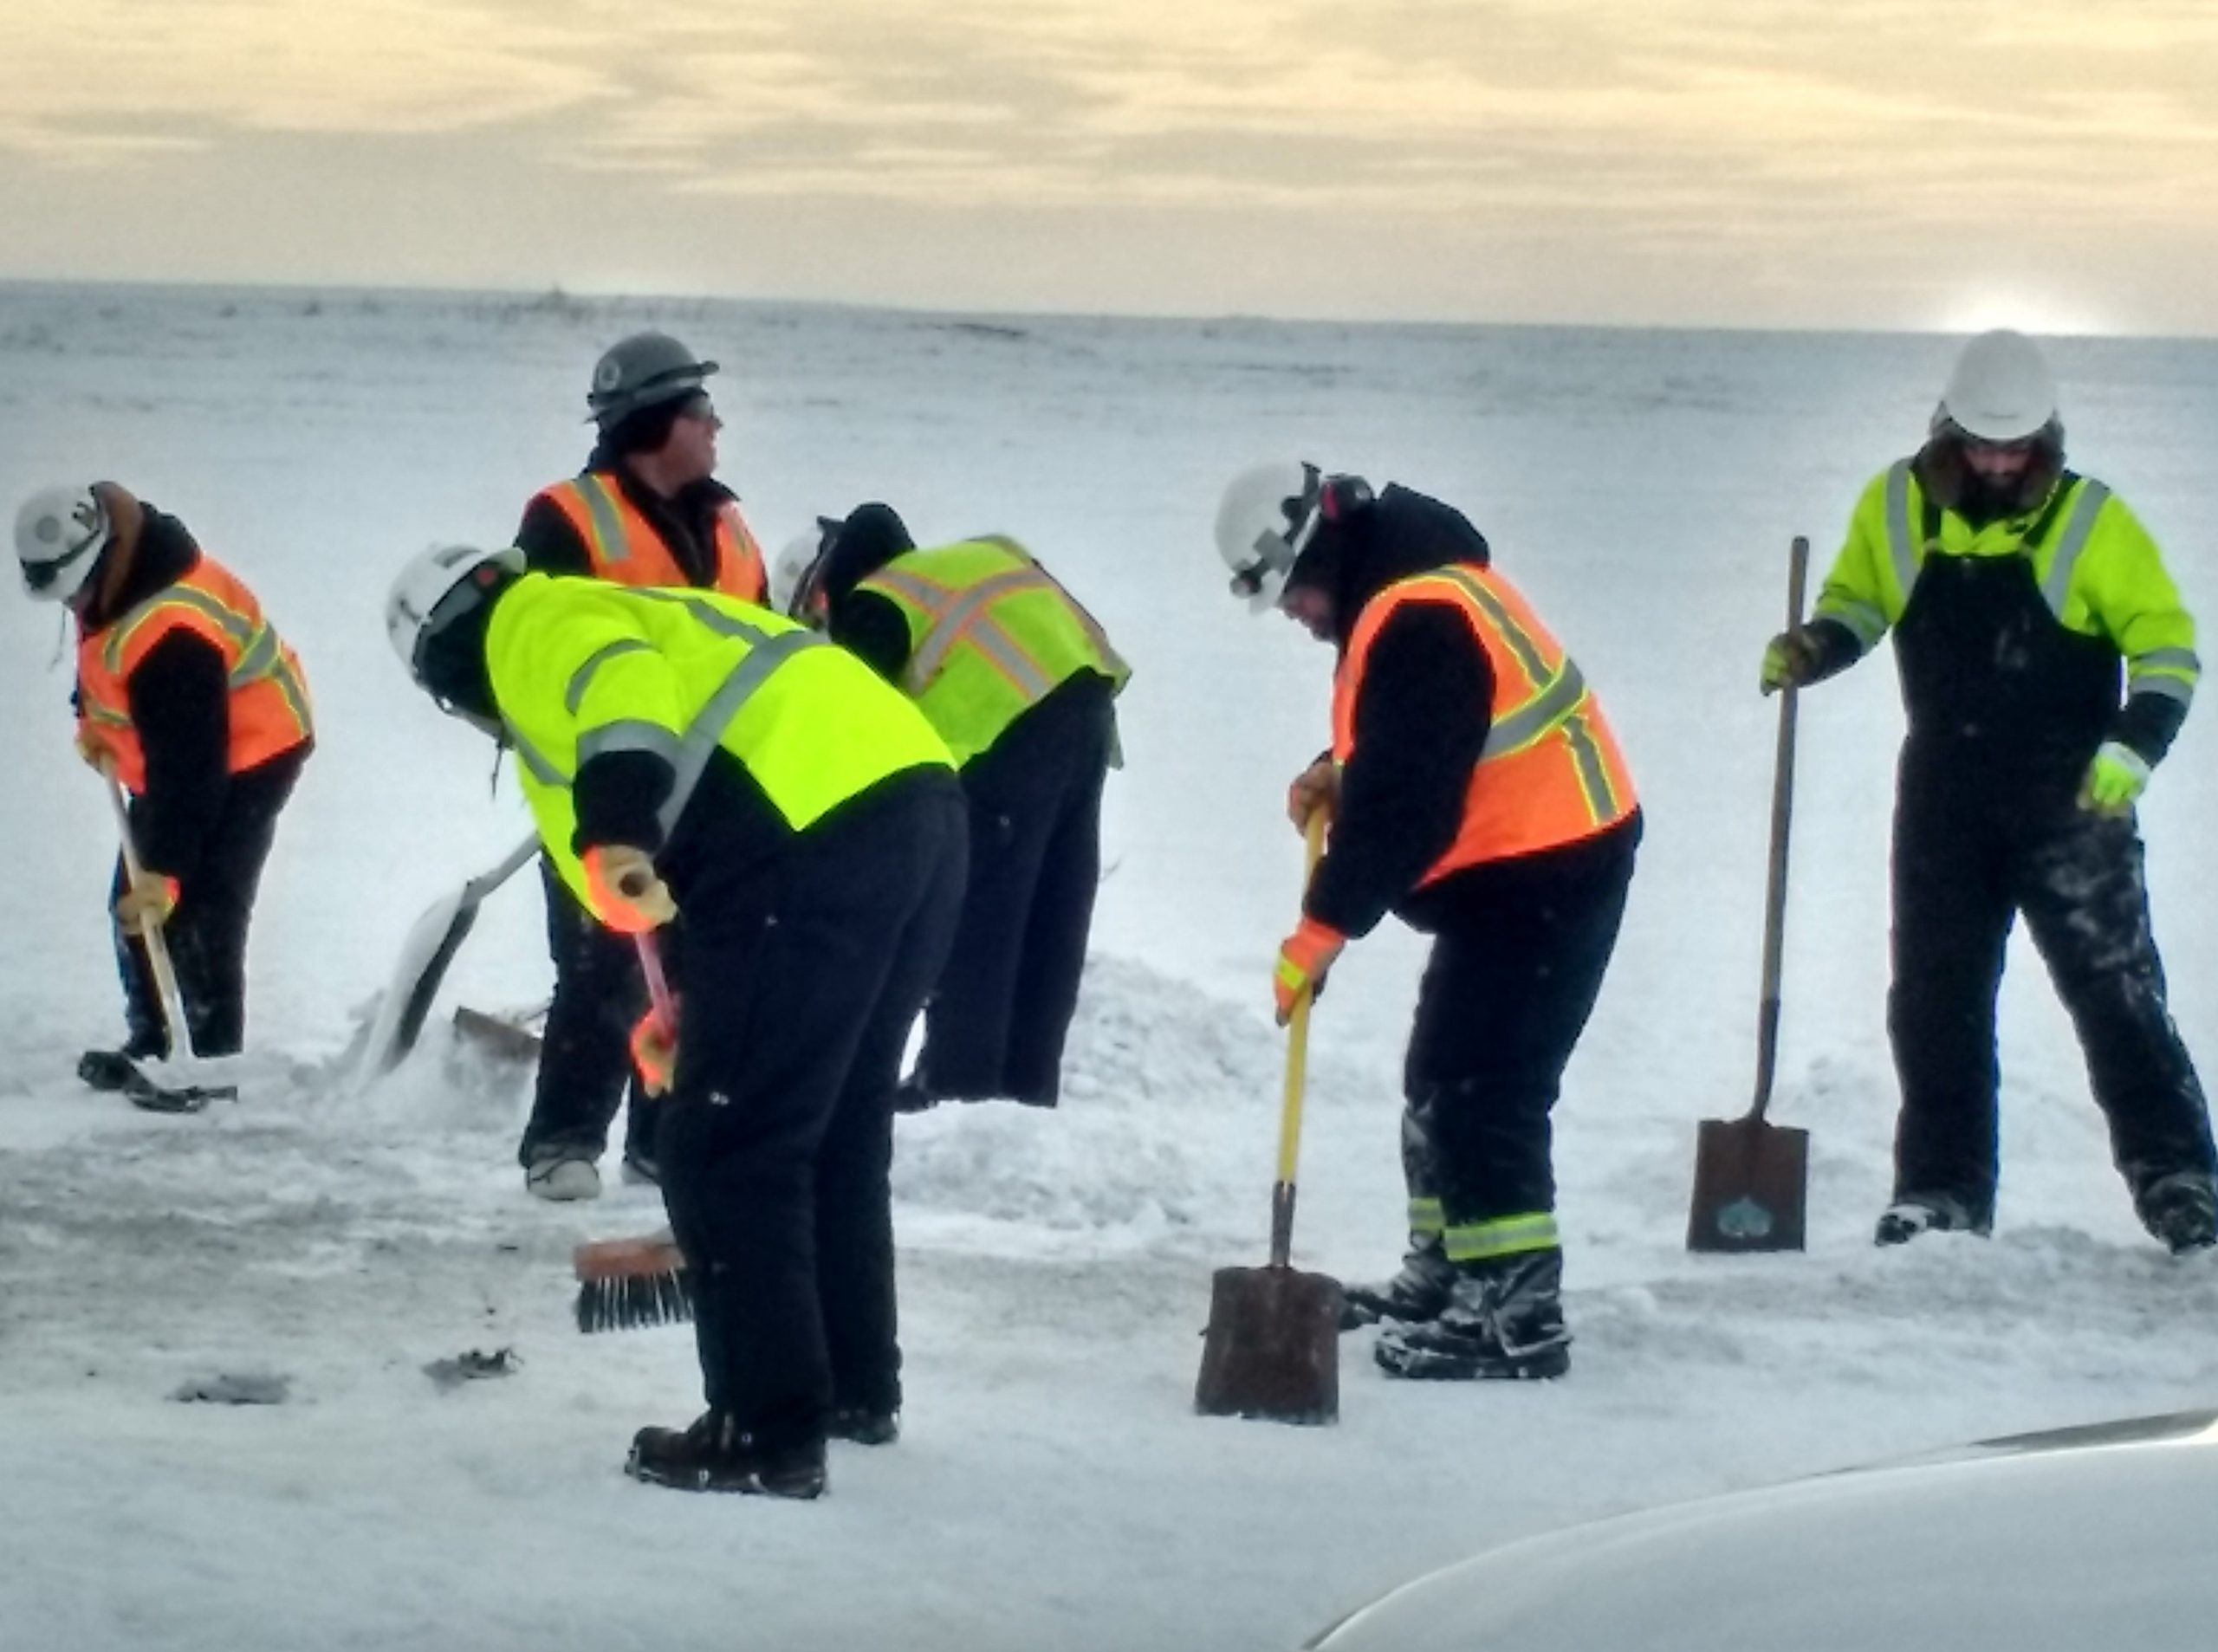 Spill Response Team members clean up residual material following a remote equipment fire